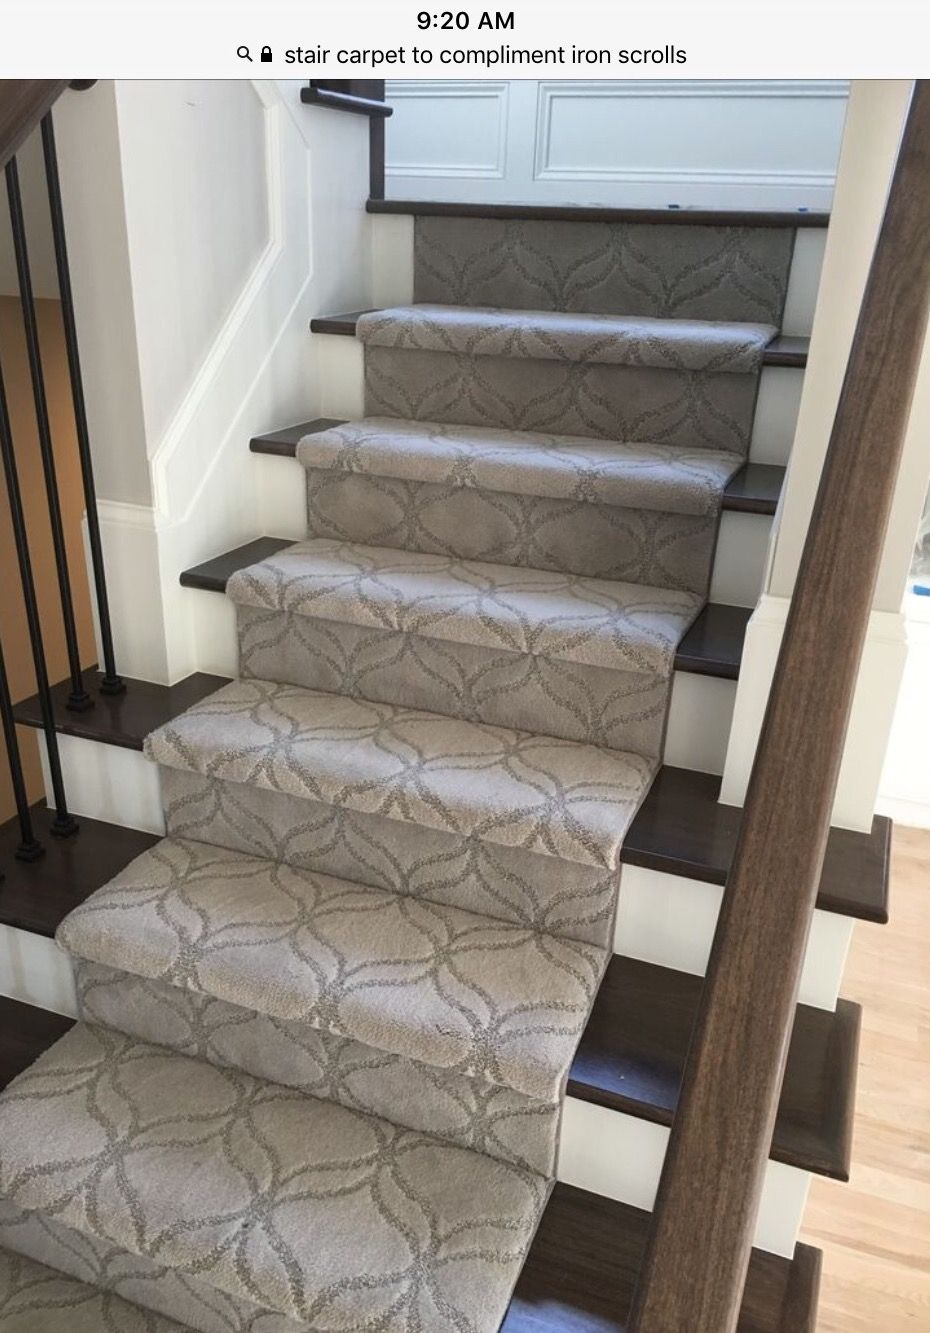 Pin by Jennie Morrison on Stair carpet Pinterest Stair carpet